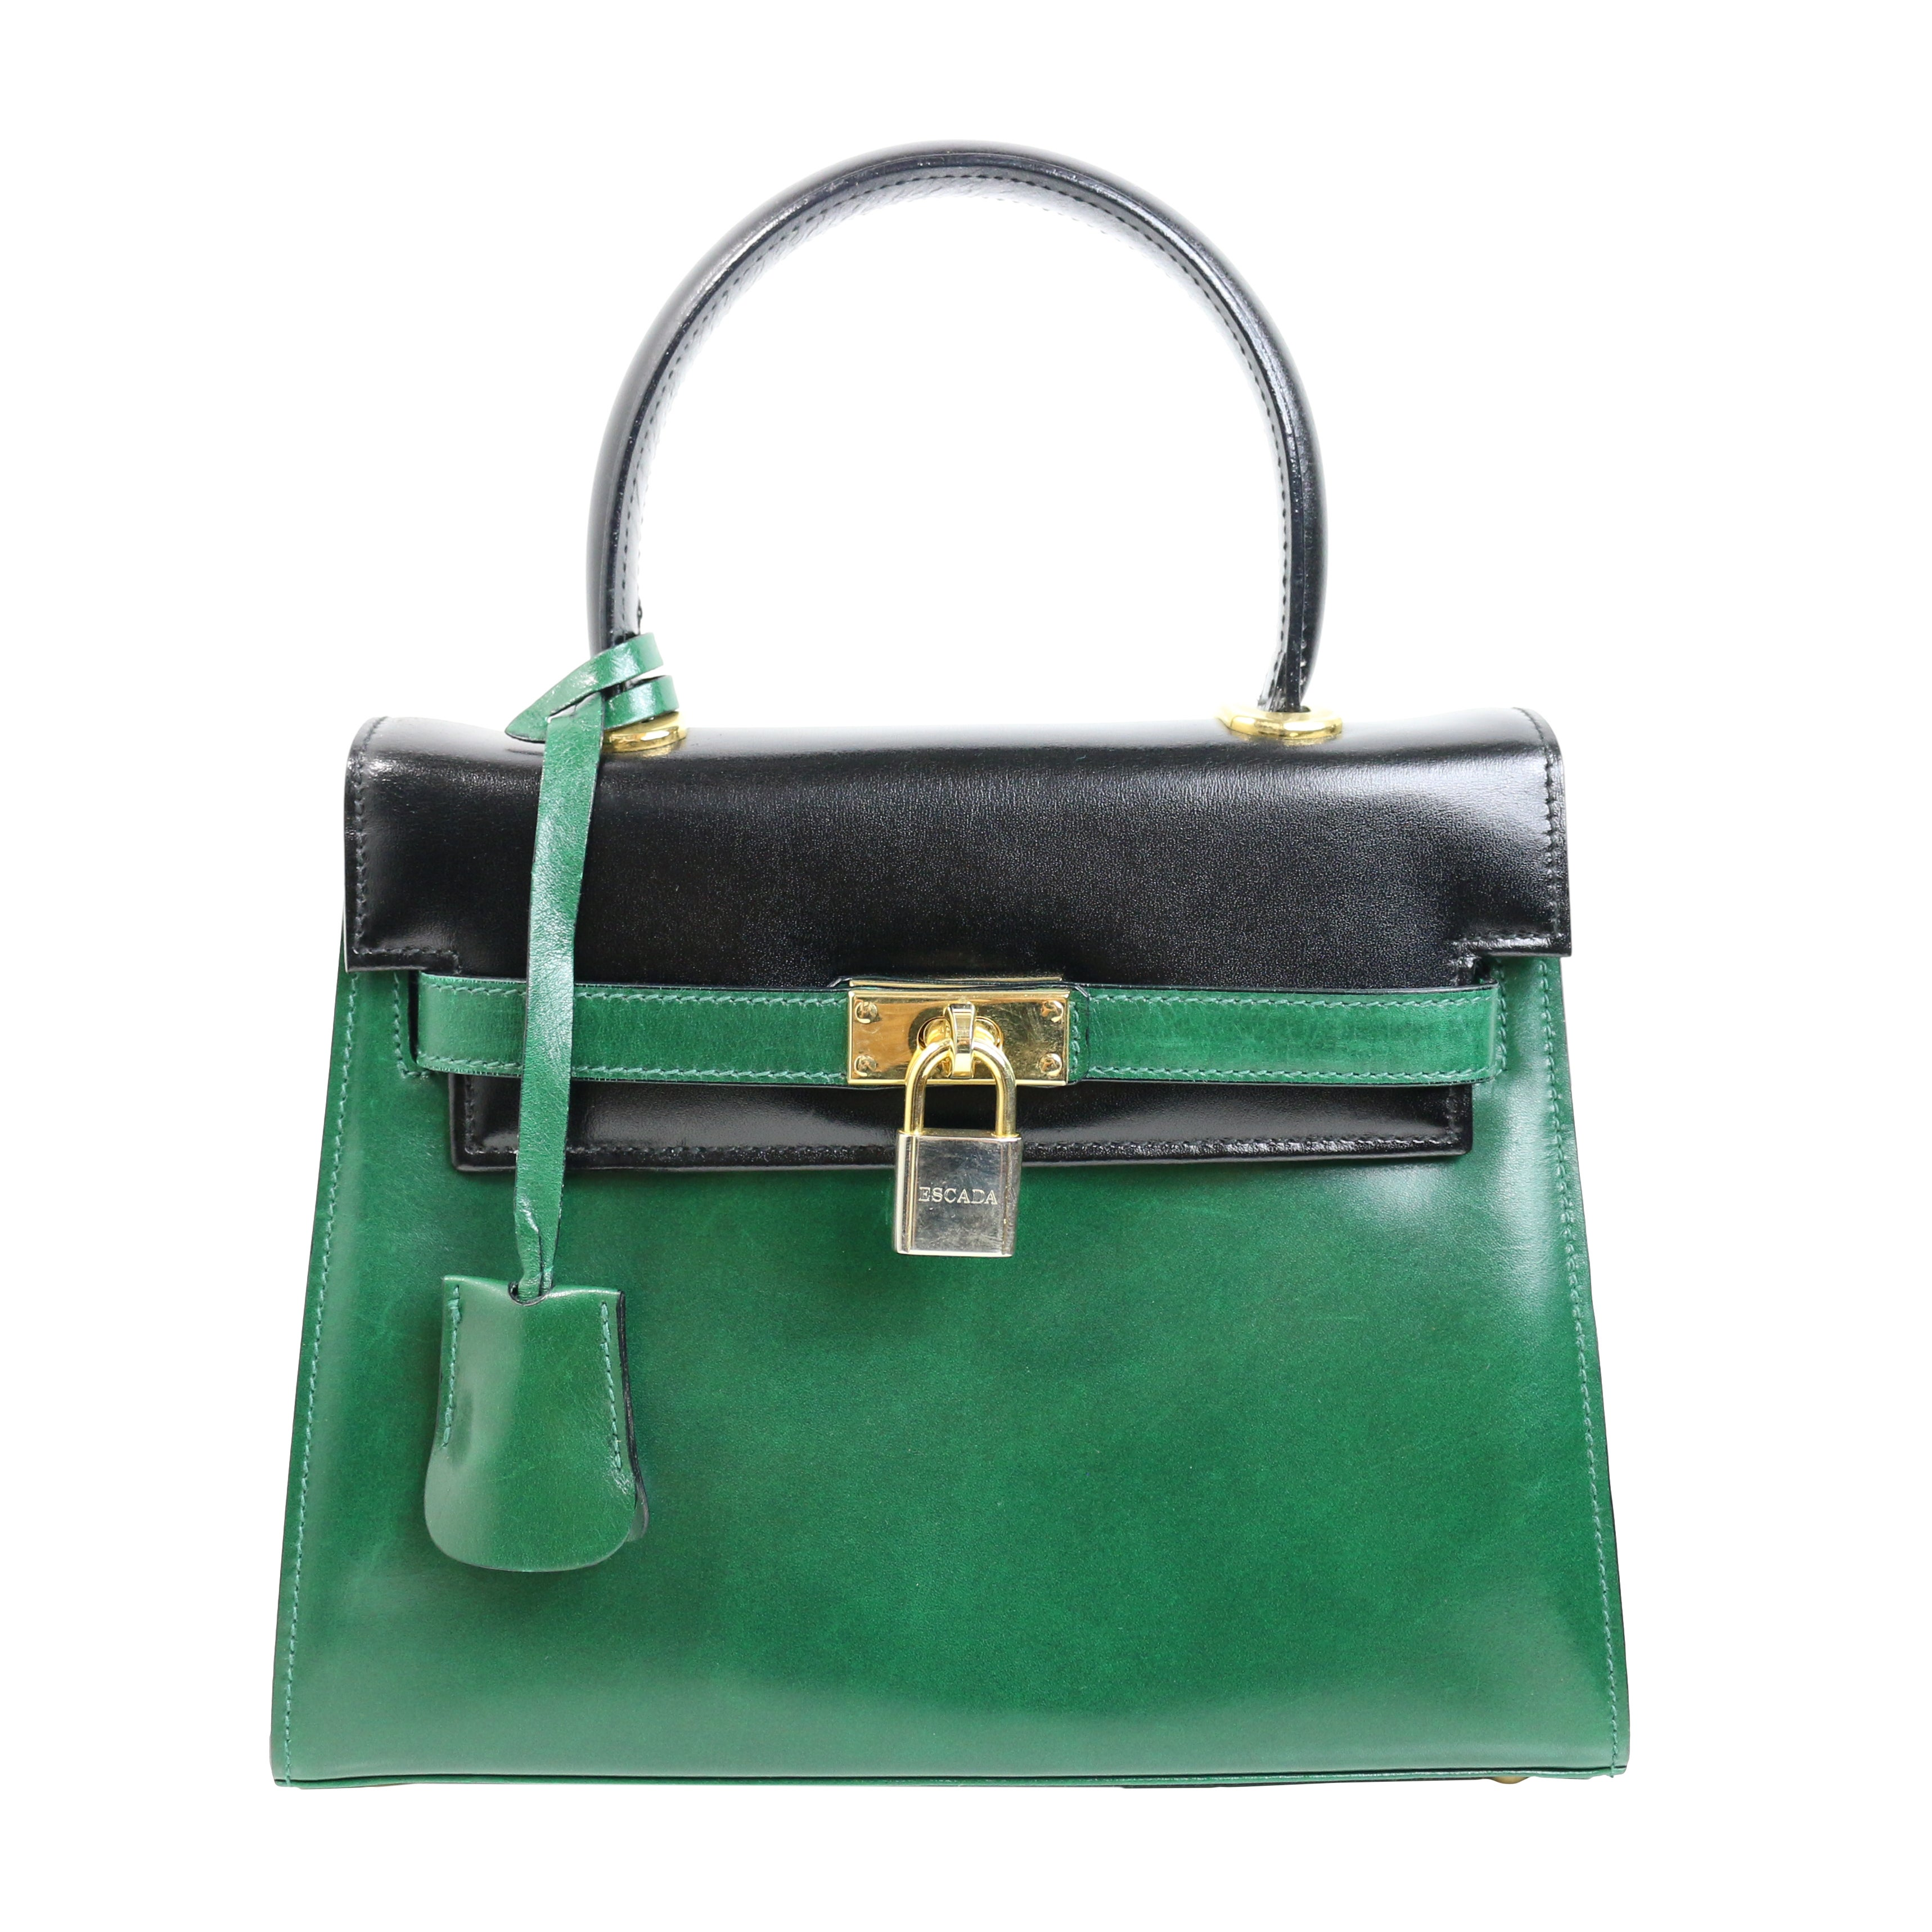 f1087431ca36 Escada Green and Black Patent Leather Handbag For Sale at 1stdibs